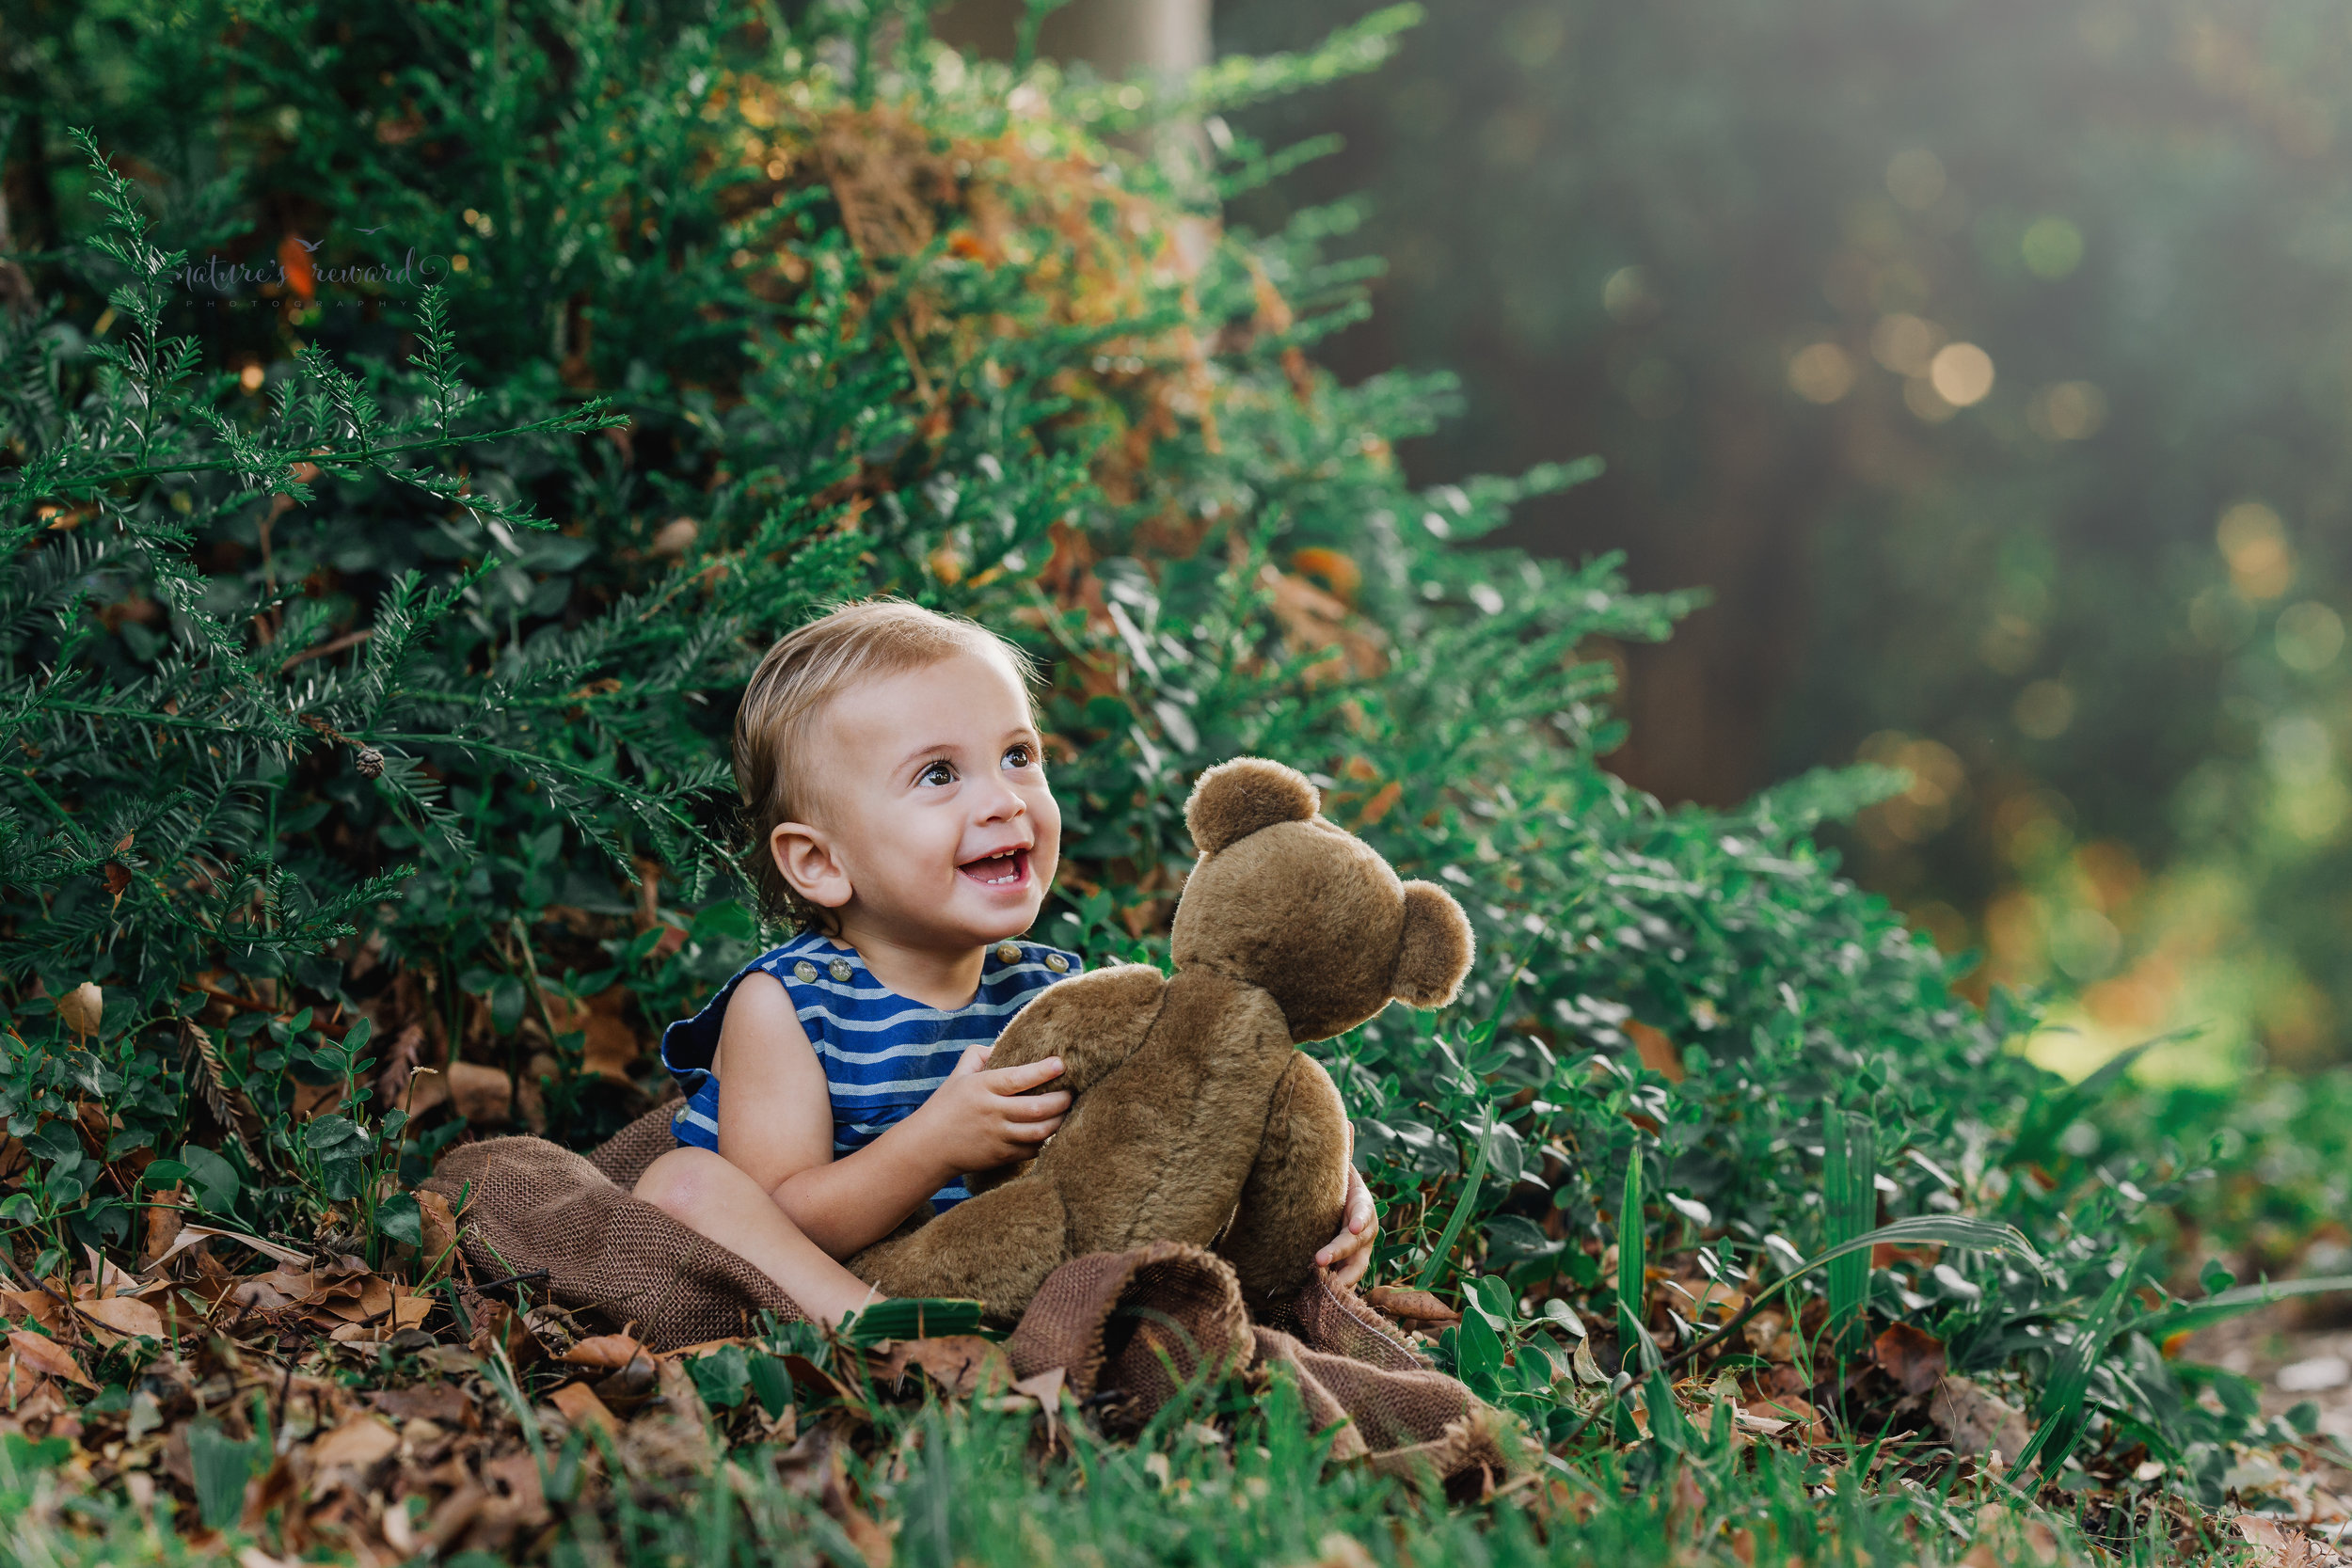 Gorgeous Baby boy holding his teddy smiling in this vintage inspired portrait by Nature's Reward Photography